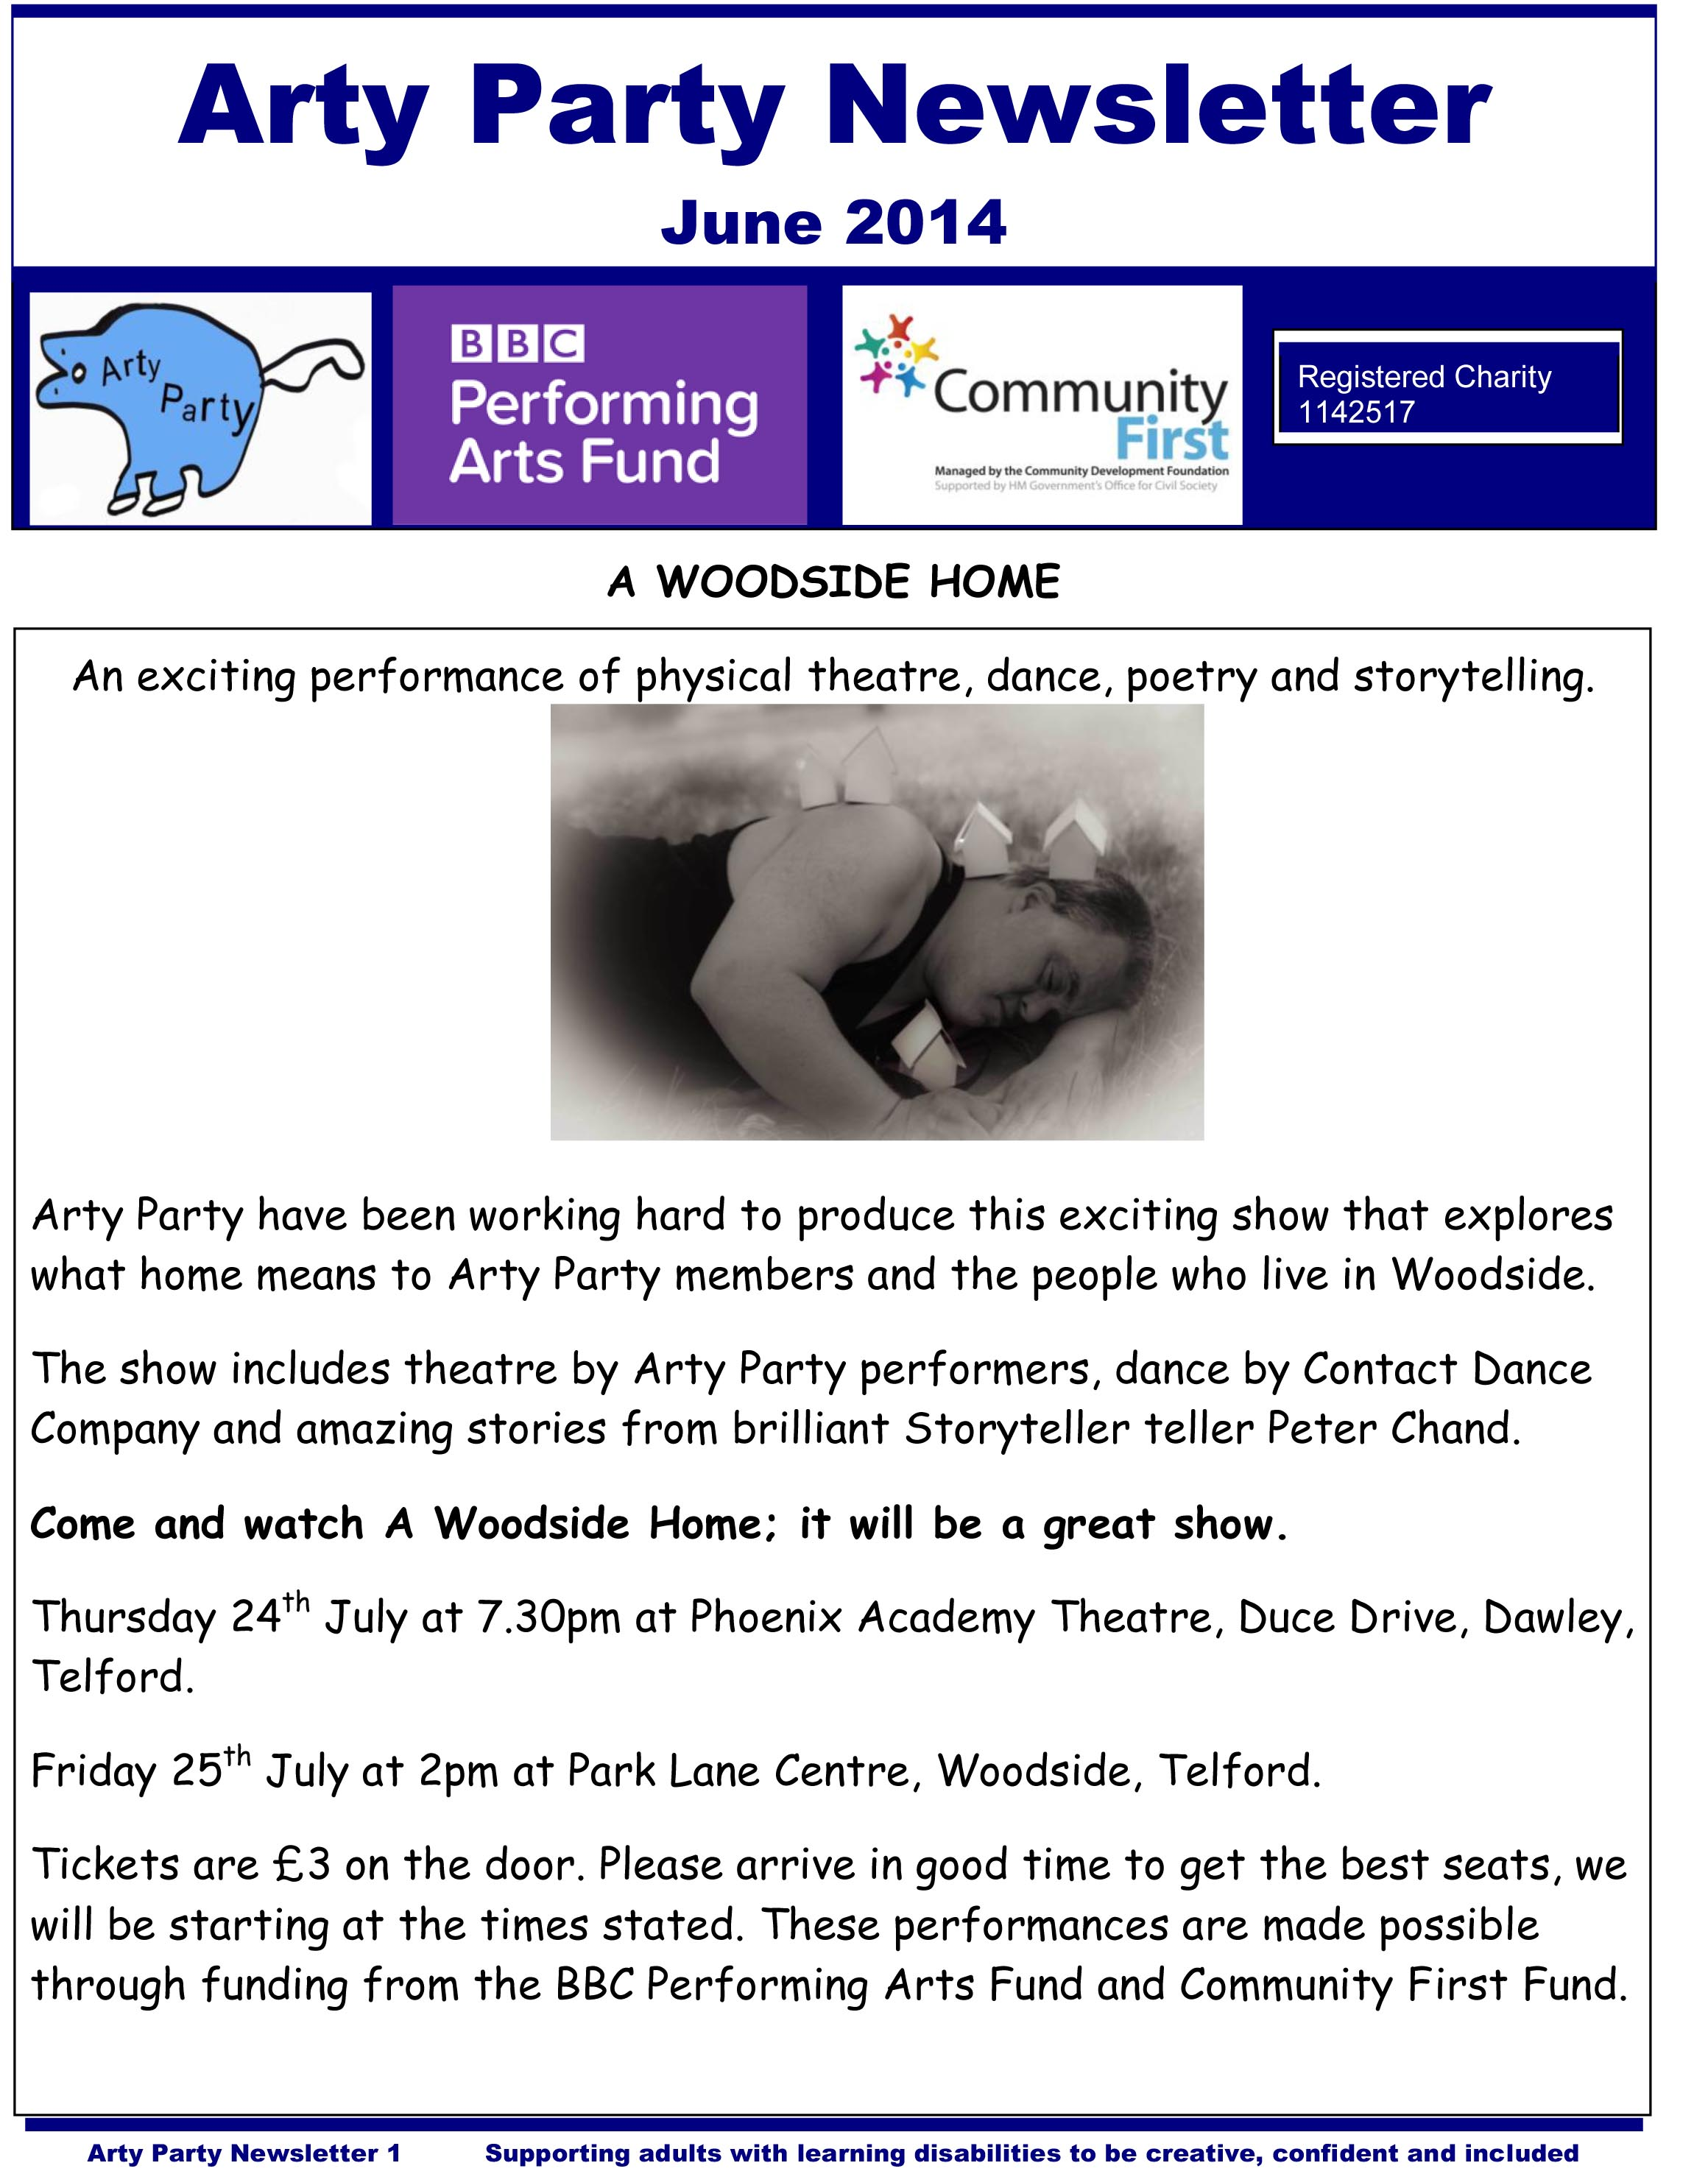 Arty Party Newsletter June 2014 for facebook